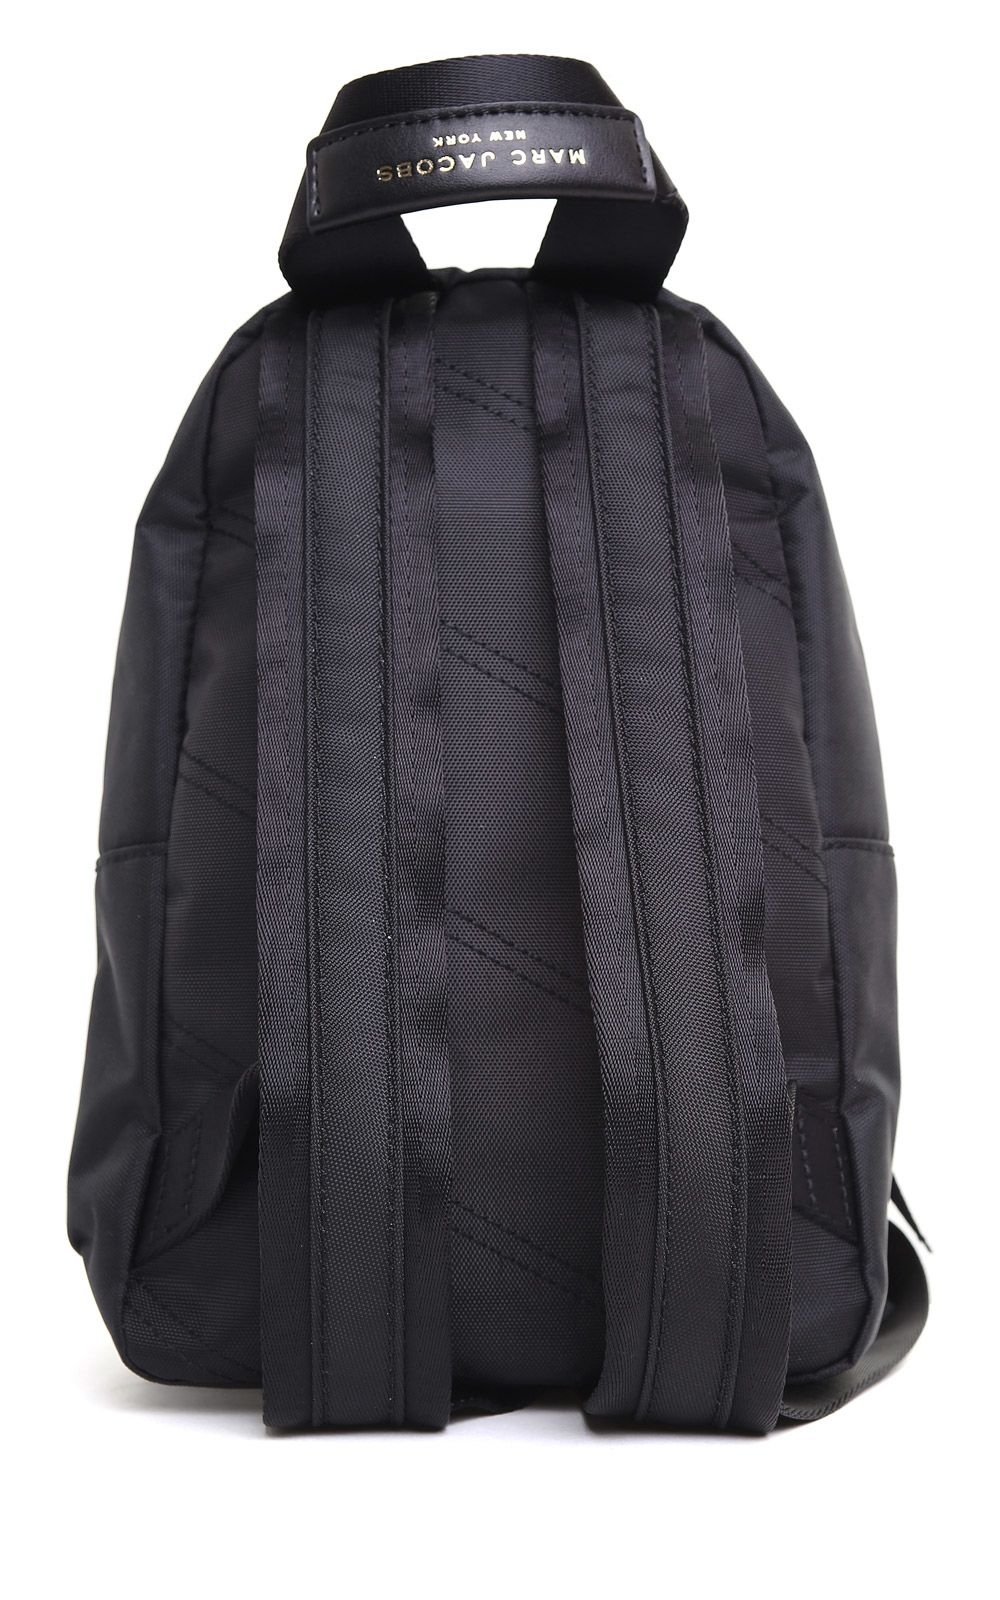 Track Pack Mini leather-trimmed nylon backpack Marc Jacobs